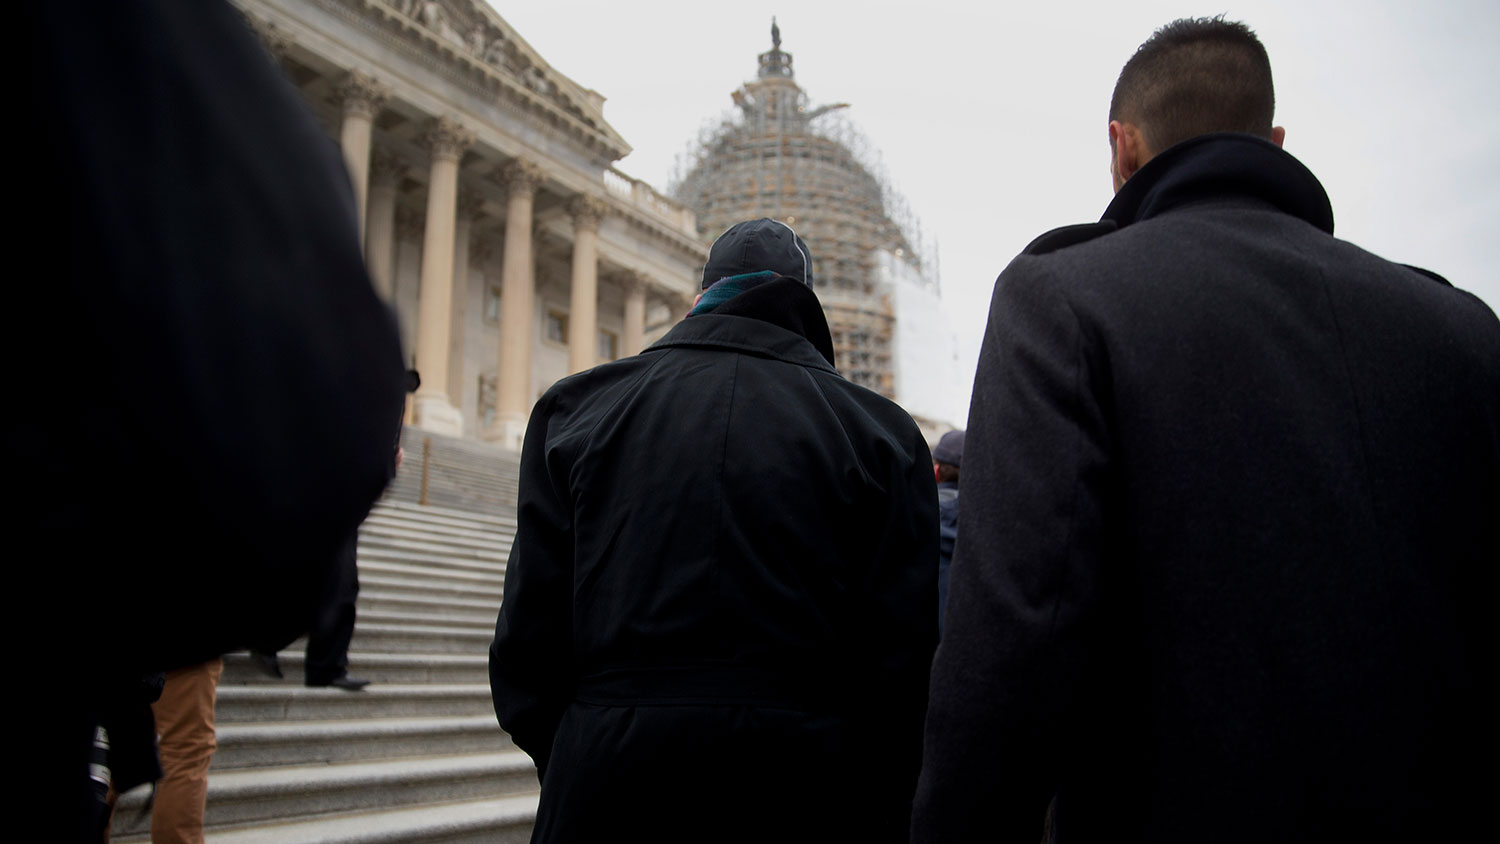 Representative Elijah Cummings, a Democrat from Maryland, center, walks towards the U.S. Capitol steps with congressional staff members during a protest in Washington on Dec. 11, 2014.